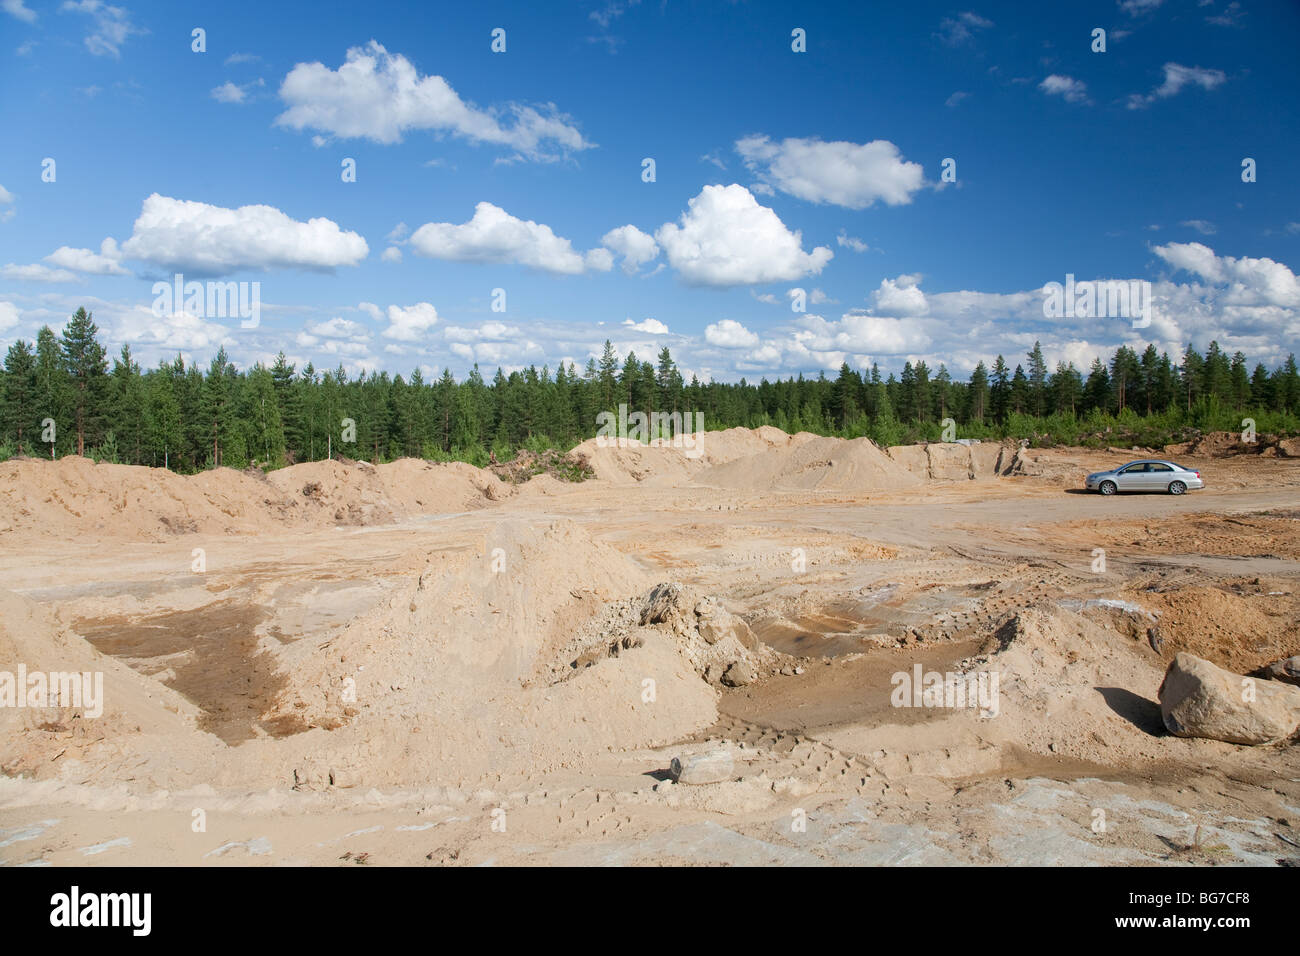 Exposed bedrock in a site where a new rock quarry will start digging for sand and crushing the bedrock to gravel - Stock Image